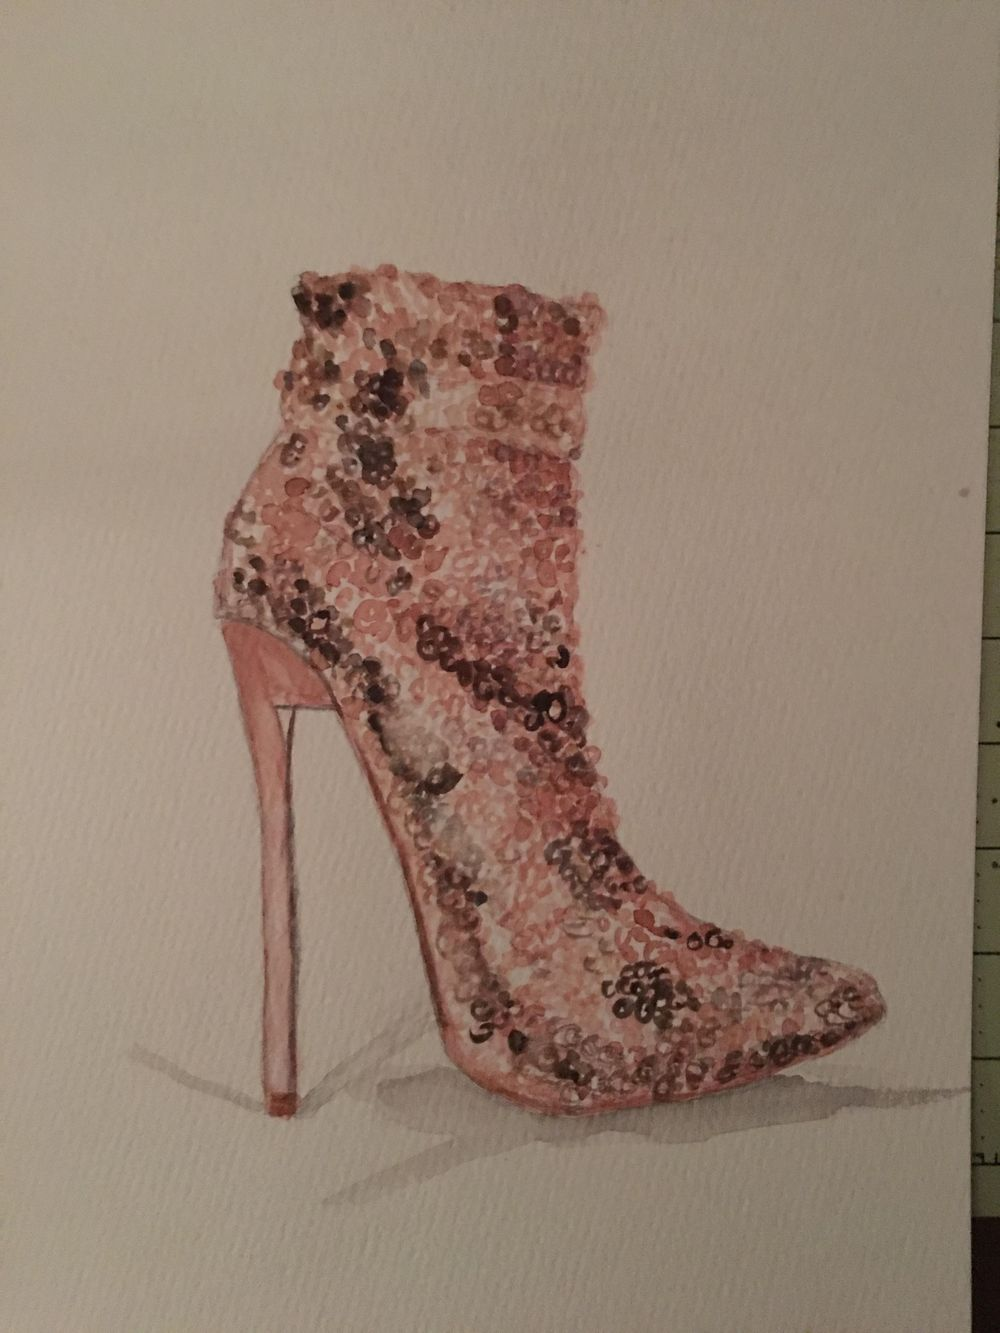 Basic Watercolor - Illustrate Shoes - image 3 - student project